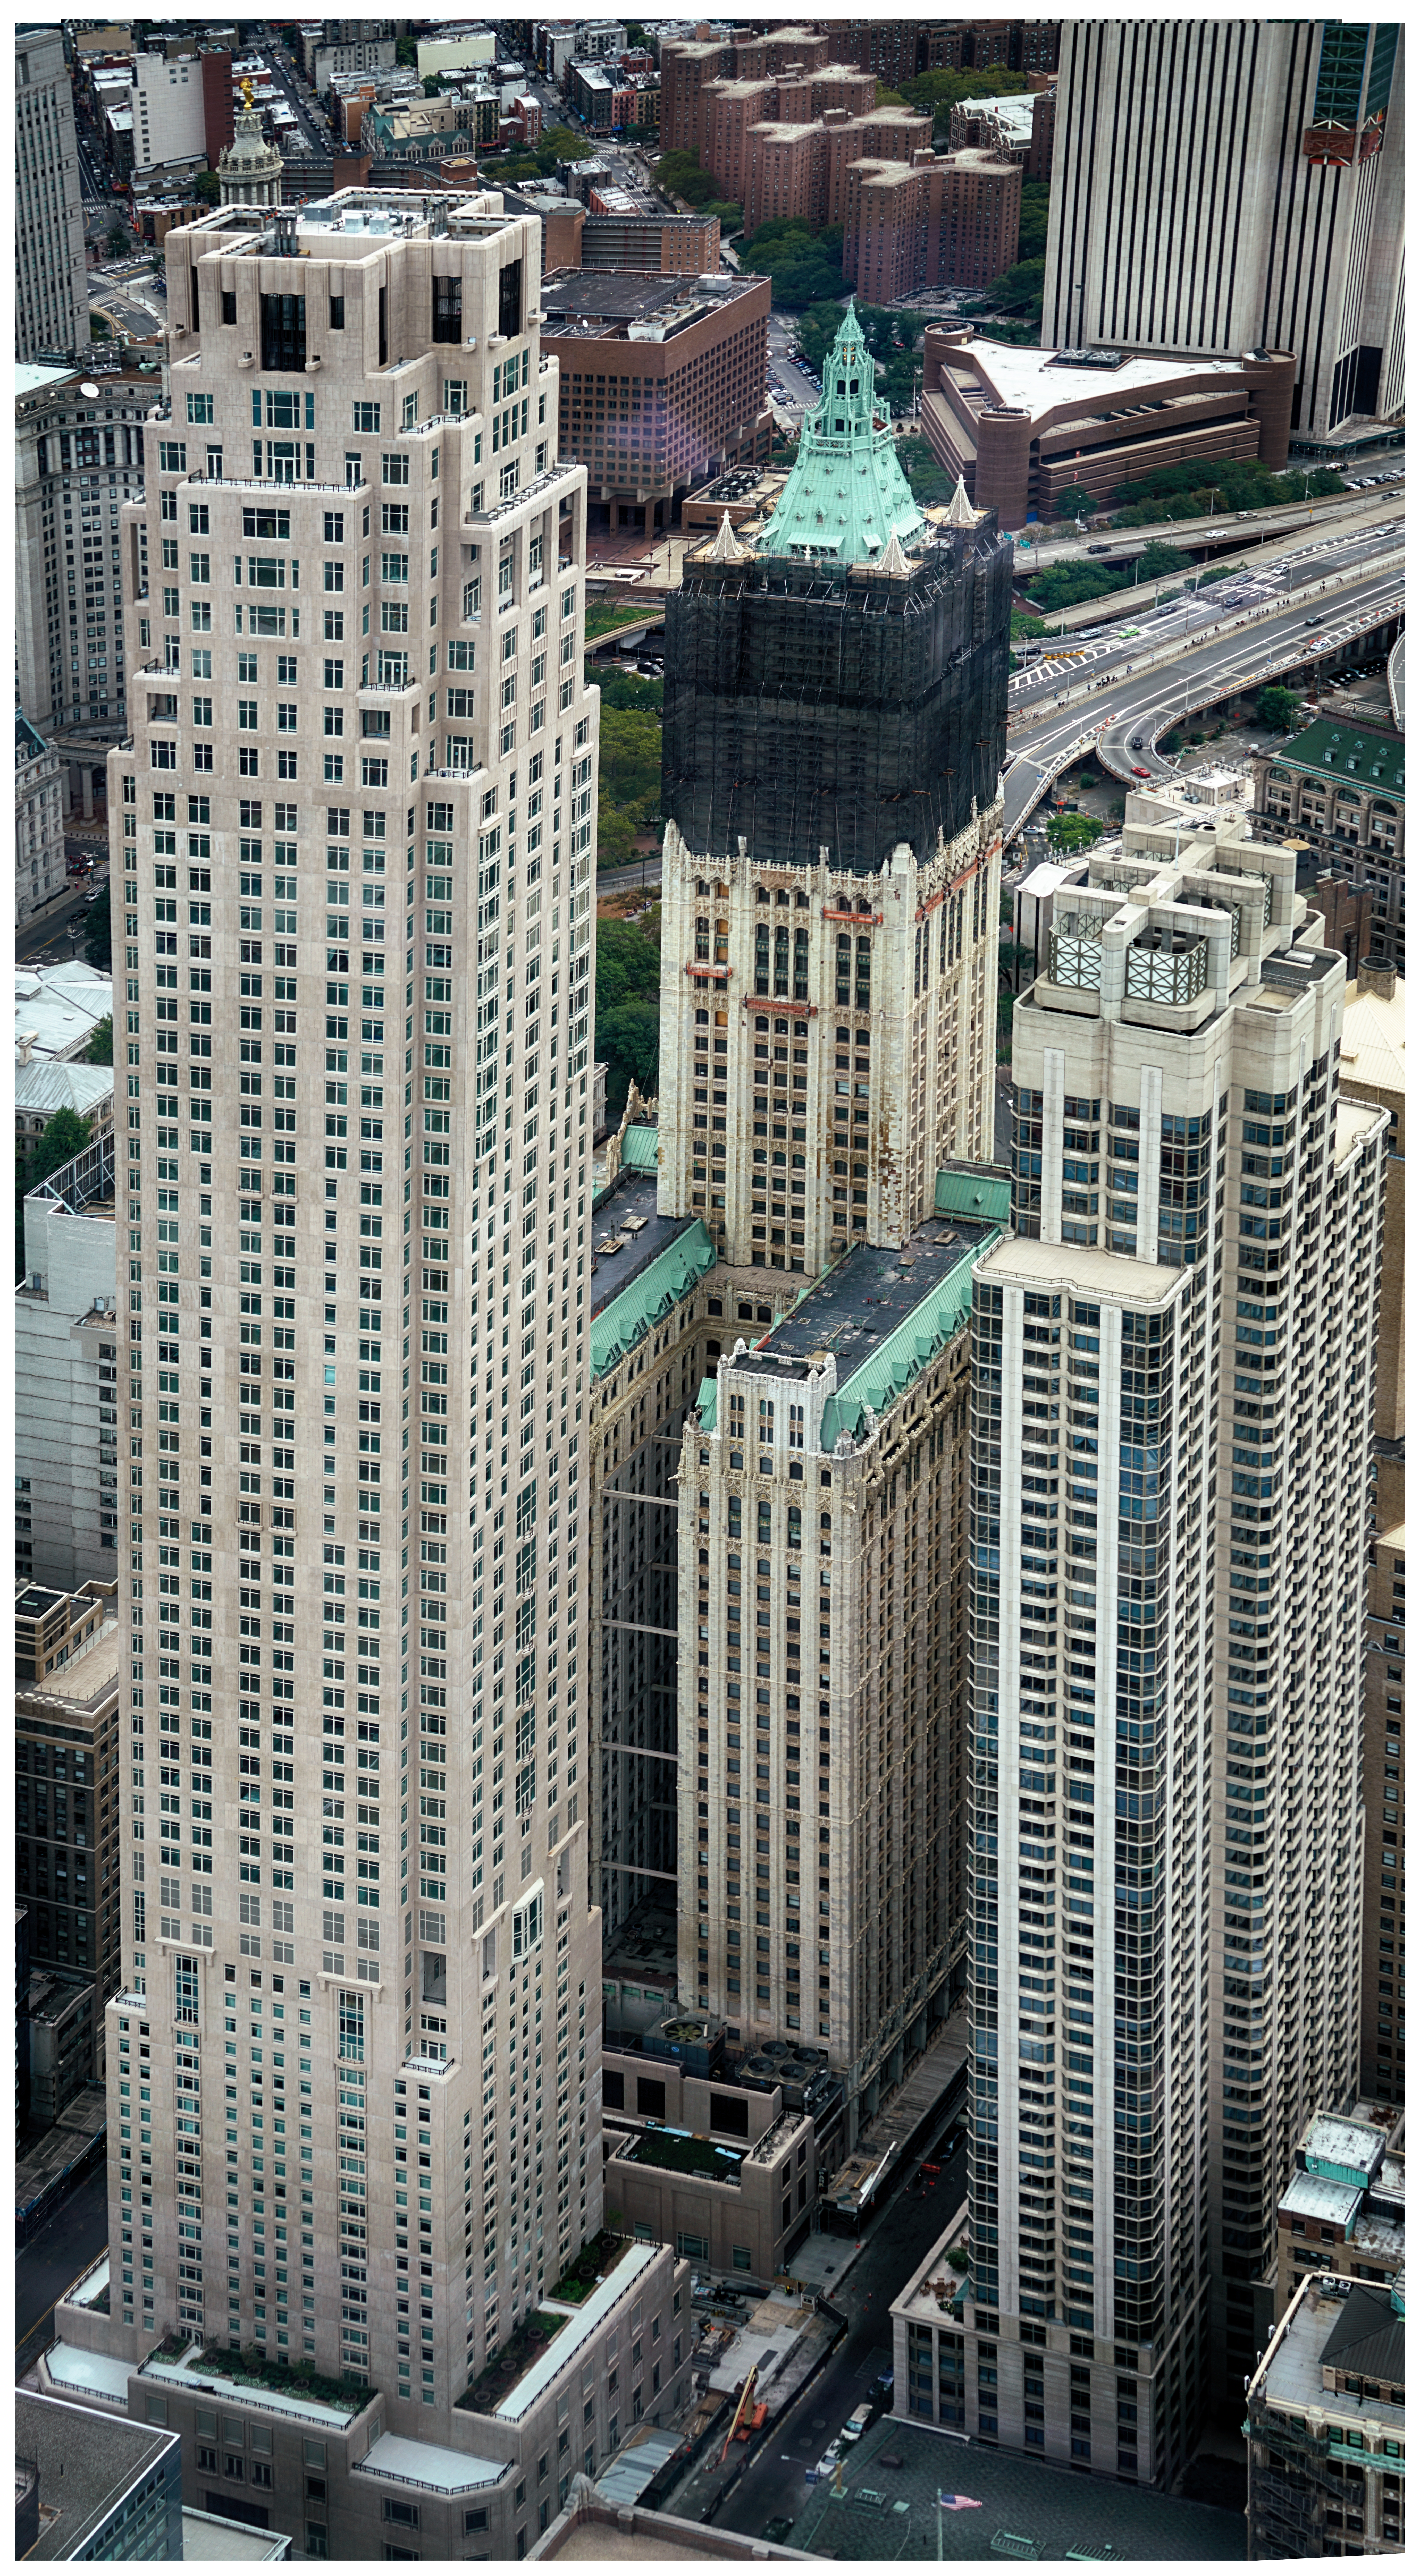 2016-09 New York-055-20160905, Architecture, Building, City, Sky, HQ Photo